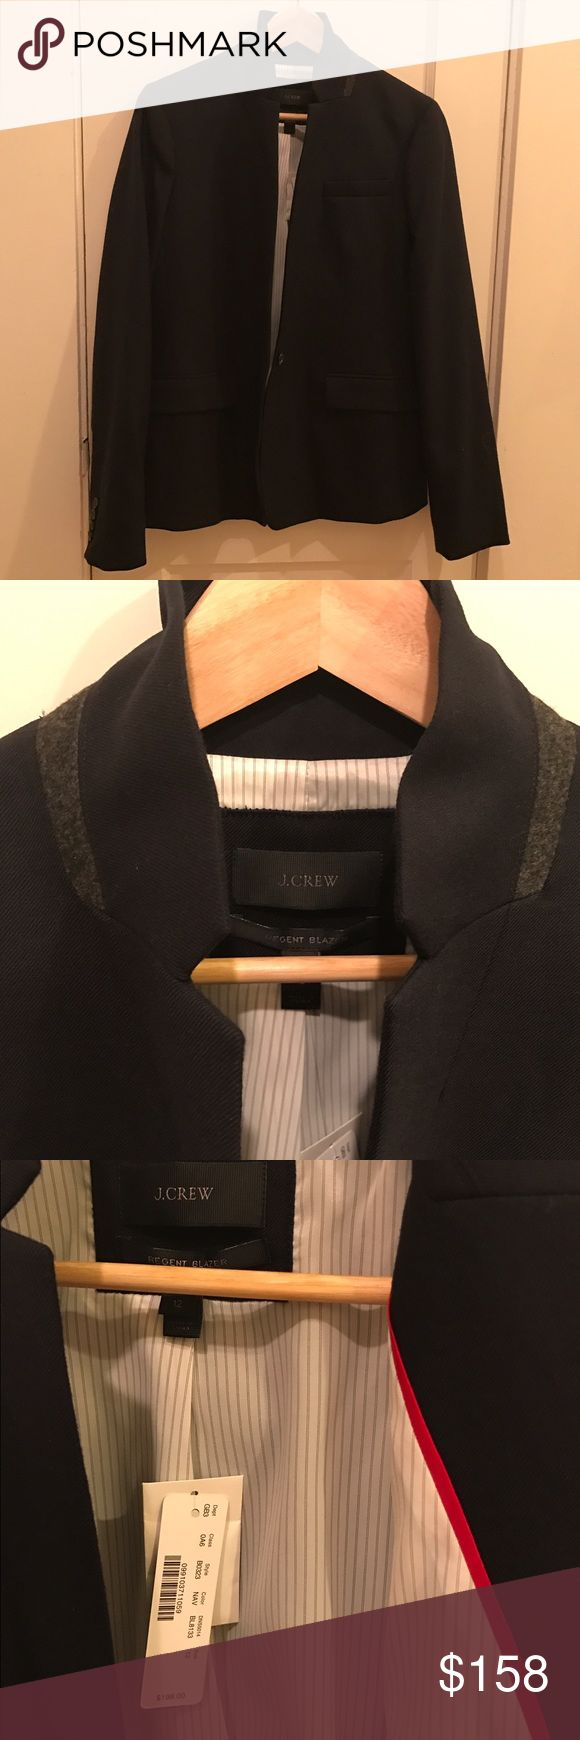 NWT JCREW Navy Regent Blazer Beautiful NWT J.Crew Regent Blazer, on original store hanger since purchase. Size 12. Wool and linen blend. Not the extremely heavy version of the Regent, mid weight. All season appropriate. Gray wool liner on the popped collar. Striped lining and red ribbon on the inside. J. Crew Jackets & Coats Blazers